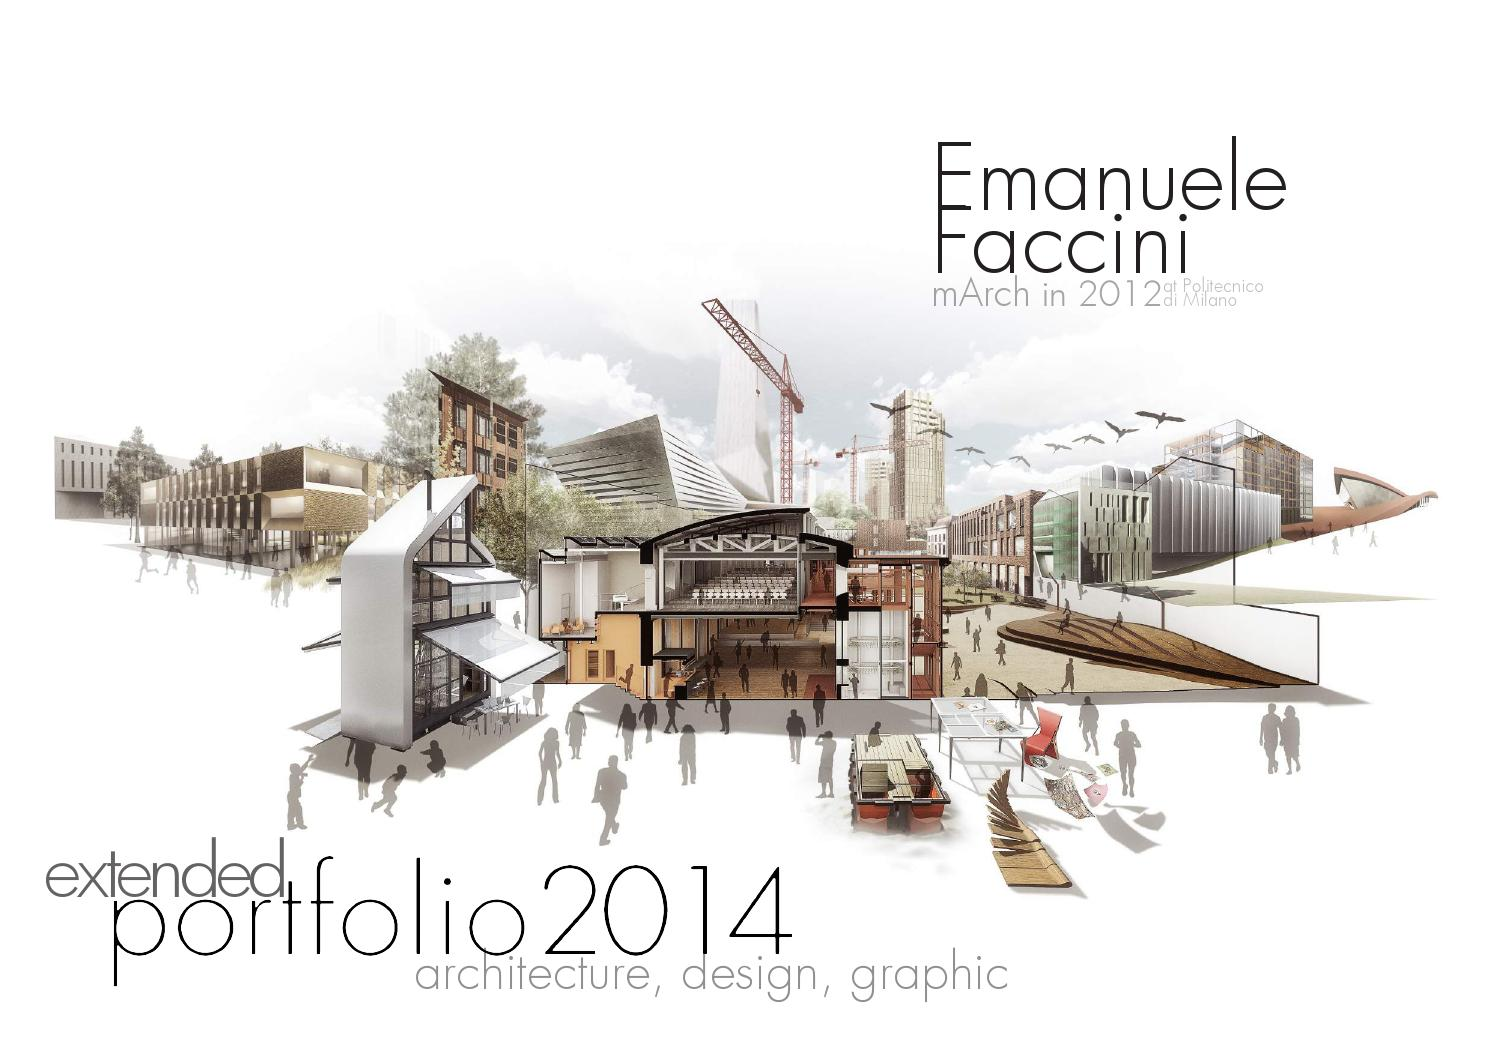 portfolio2014  extended version by emanuele faccini